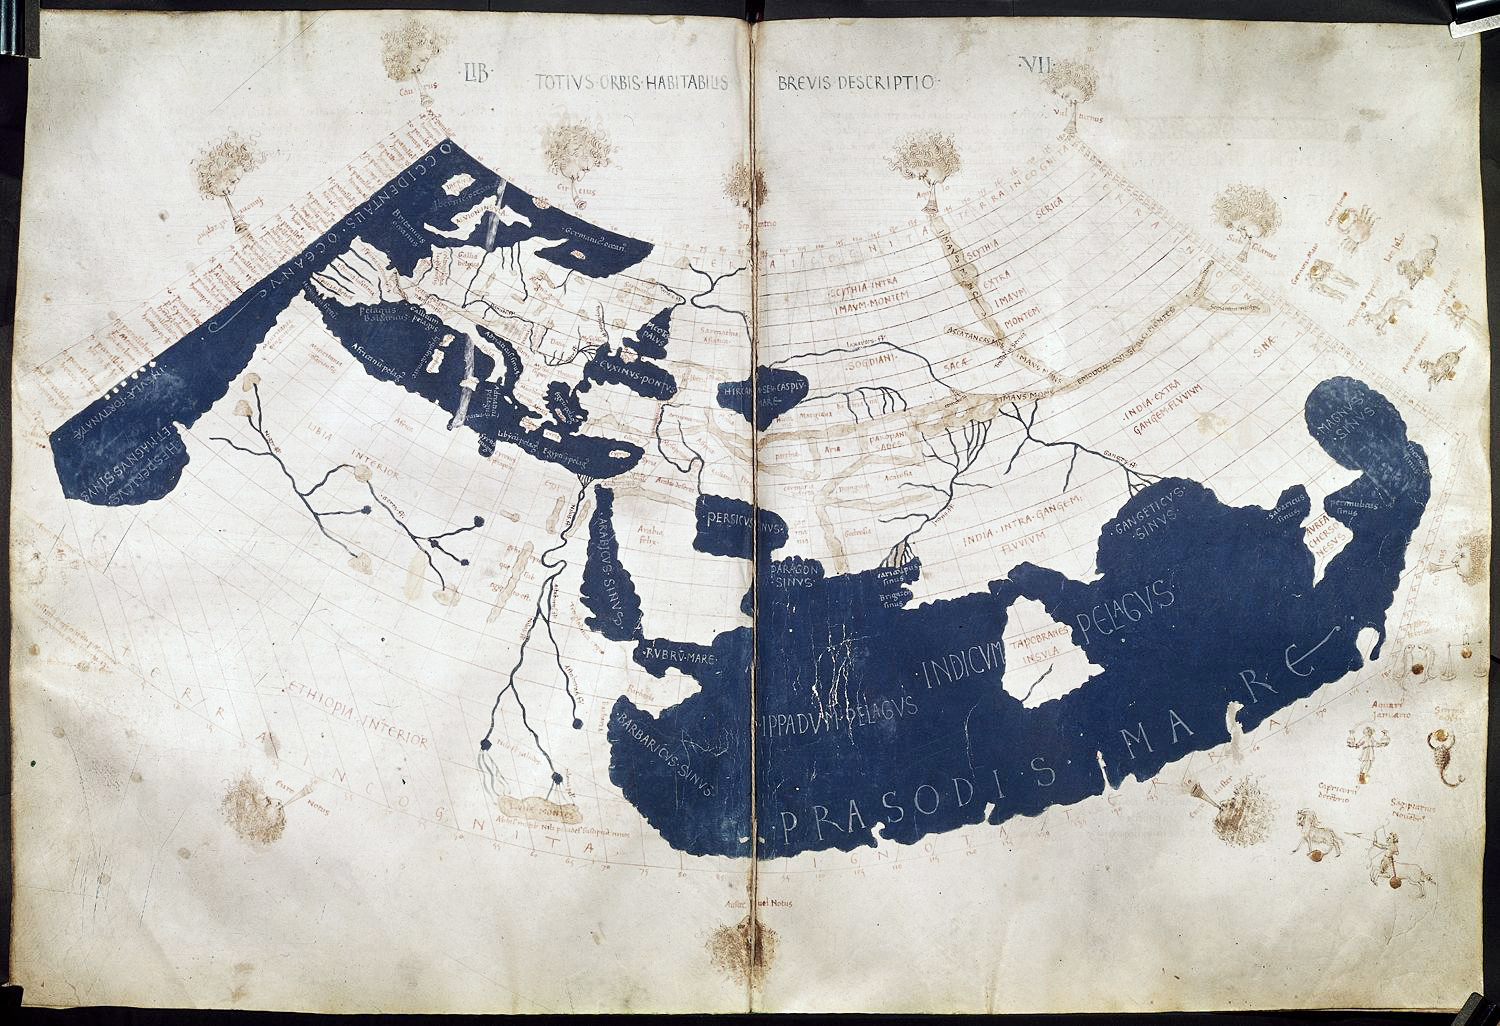 This is how the world has been mapped throughout history ... Map Of World Th Century on 1600s map of world, abstract map of world, ireland map of world, 1990s map of world, germany map of world, 6th century map of world, modern map of world, england map of world, 15th century sailors, ancient map of world, 15th century artists, 1900s map of world, spain map of world, europe map of world, religion map of world, 15th century medieval england maps, roman map of world, 15th century school, 15th century foods, silver map of world,